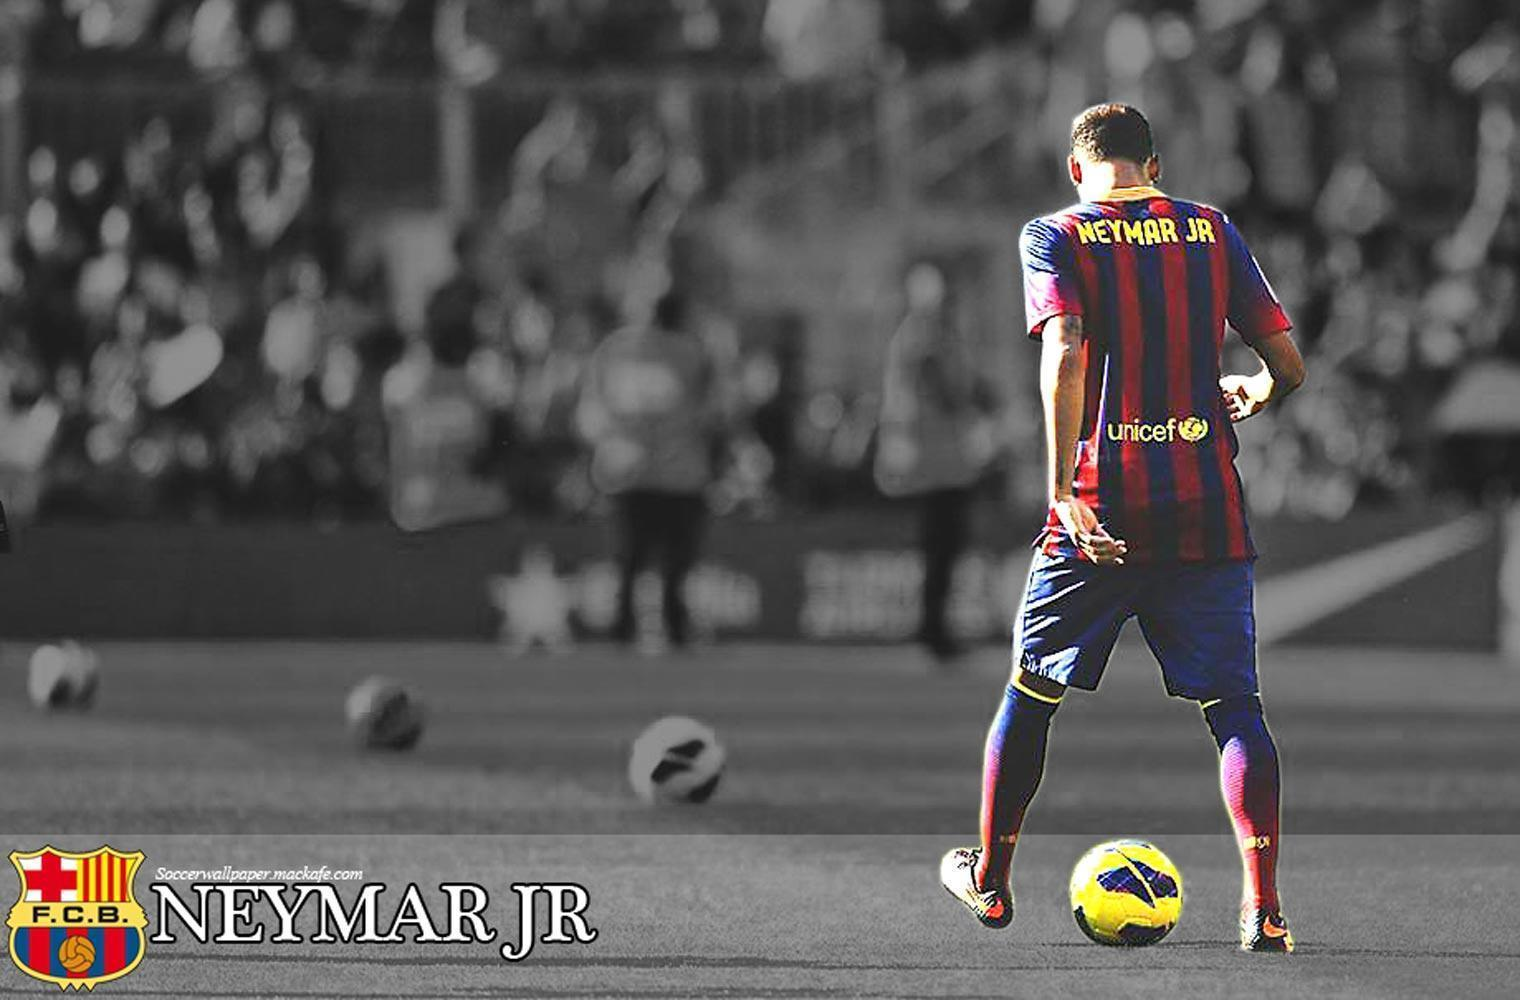 Barcelona Neymar Jr Wallpaper.jpg?m=1371058180